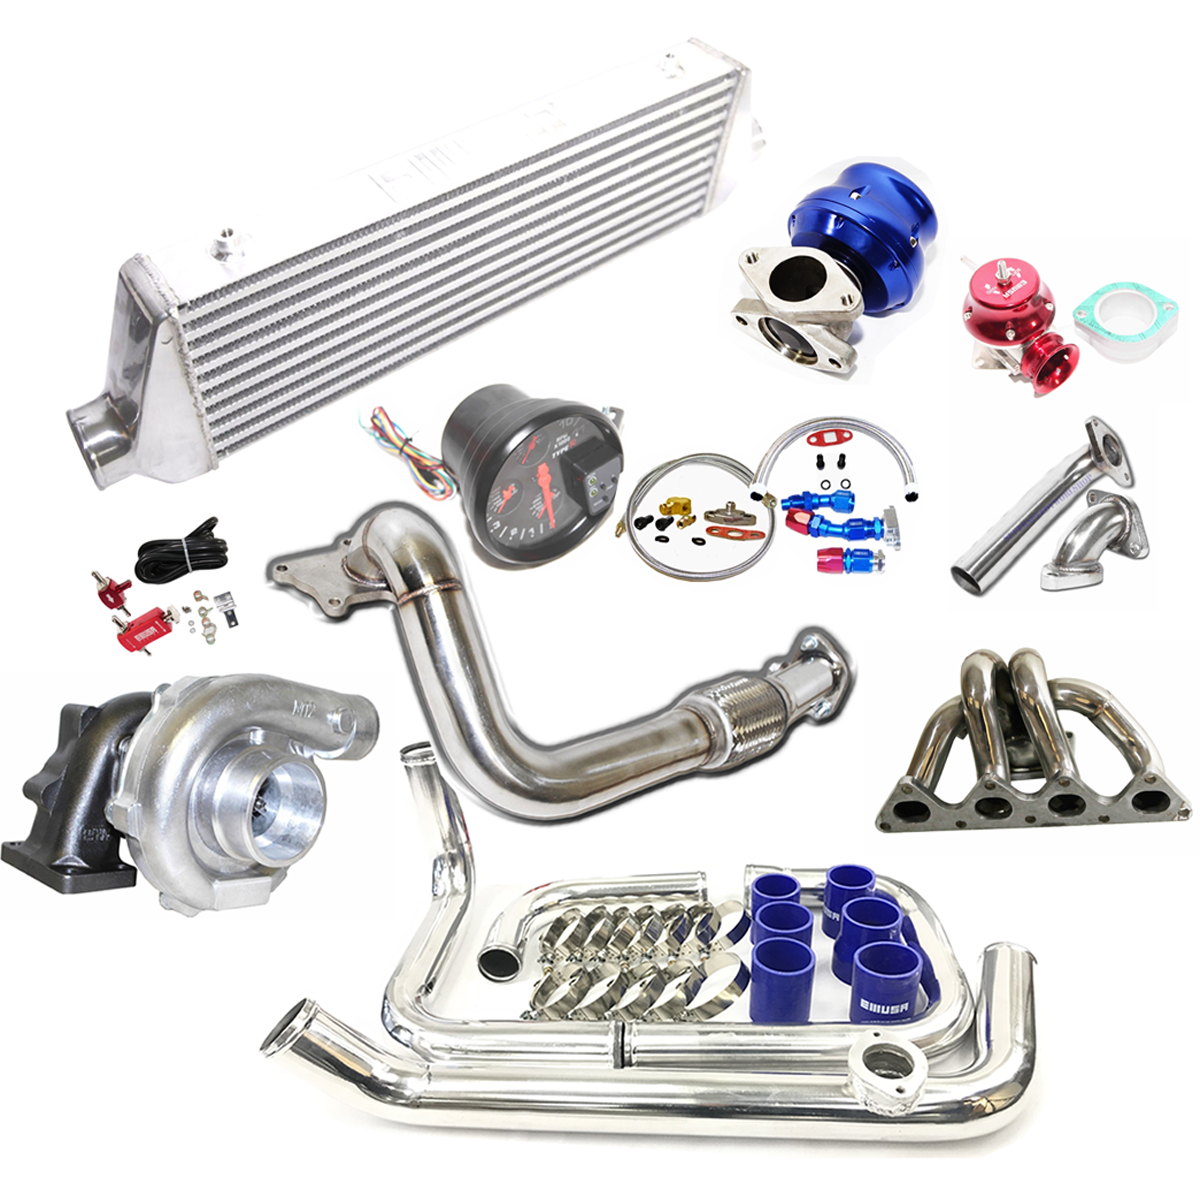 Turbo Kits De T3/t4 Turbo Para 1988-1995 Honda Civic B16